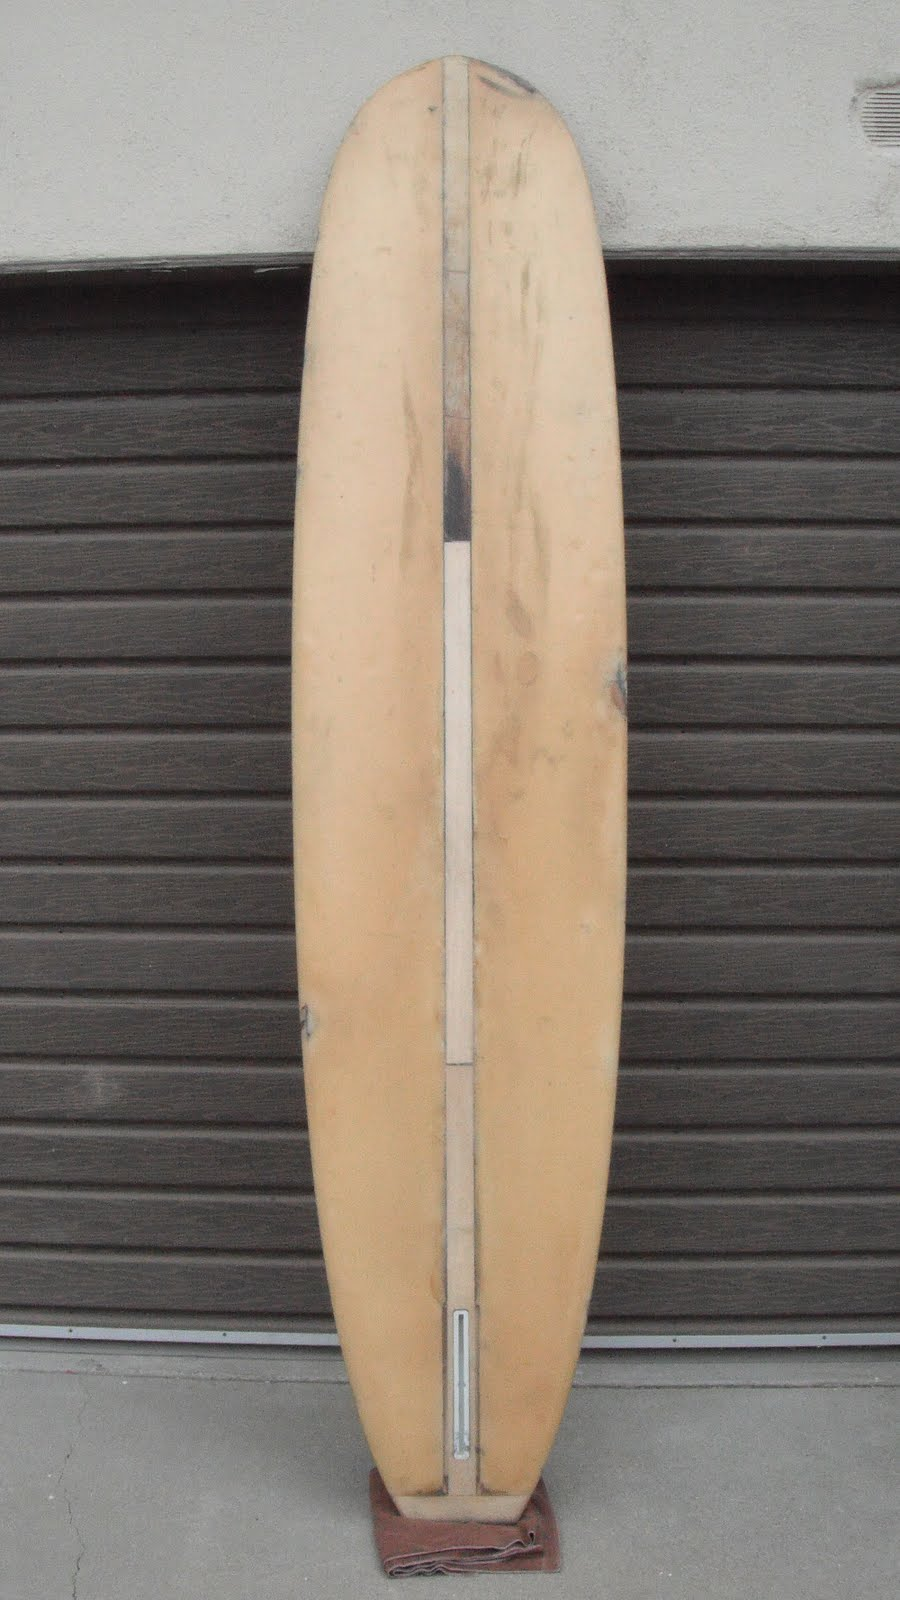 Davenport Surfboards Craigslist Is A Beautiful Thing Isn T It